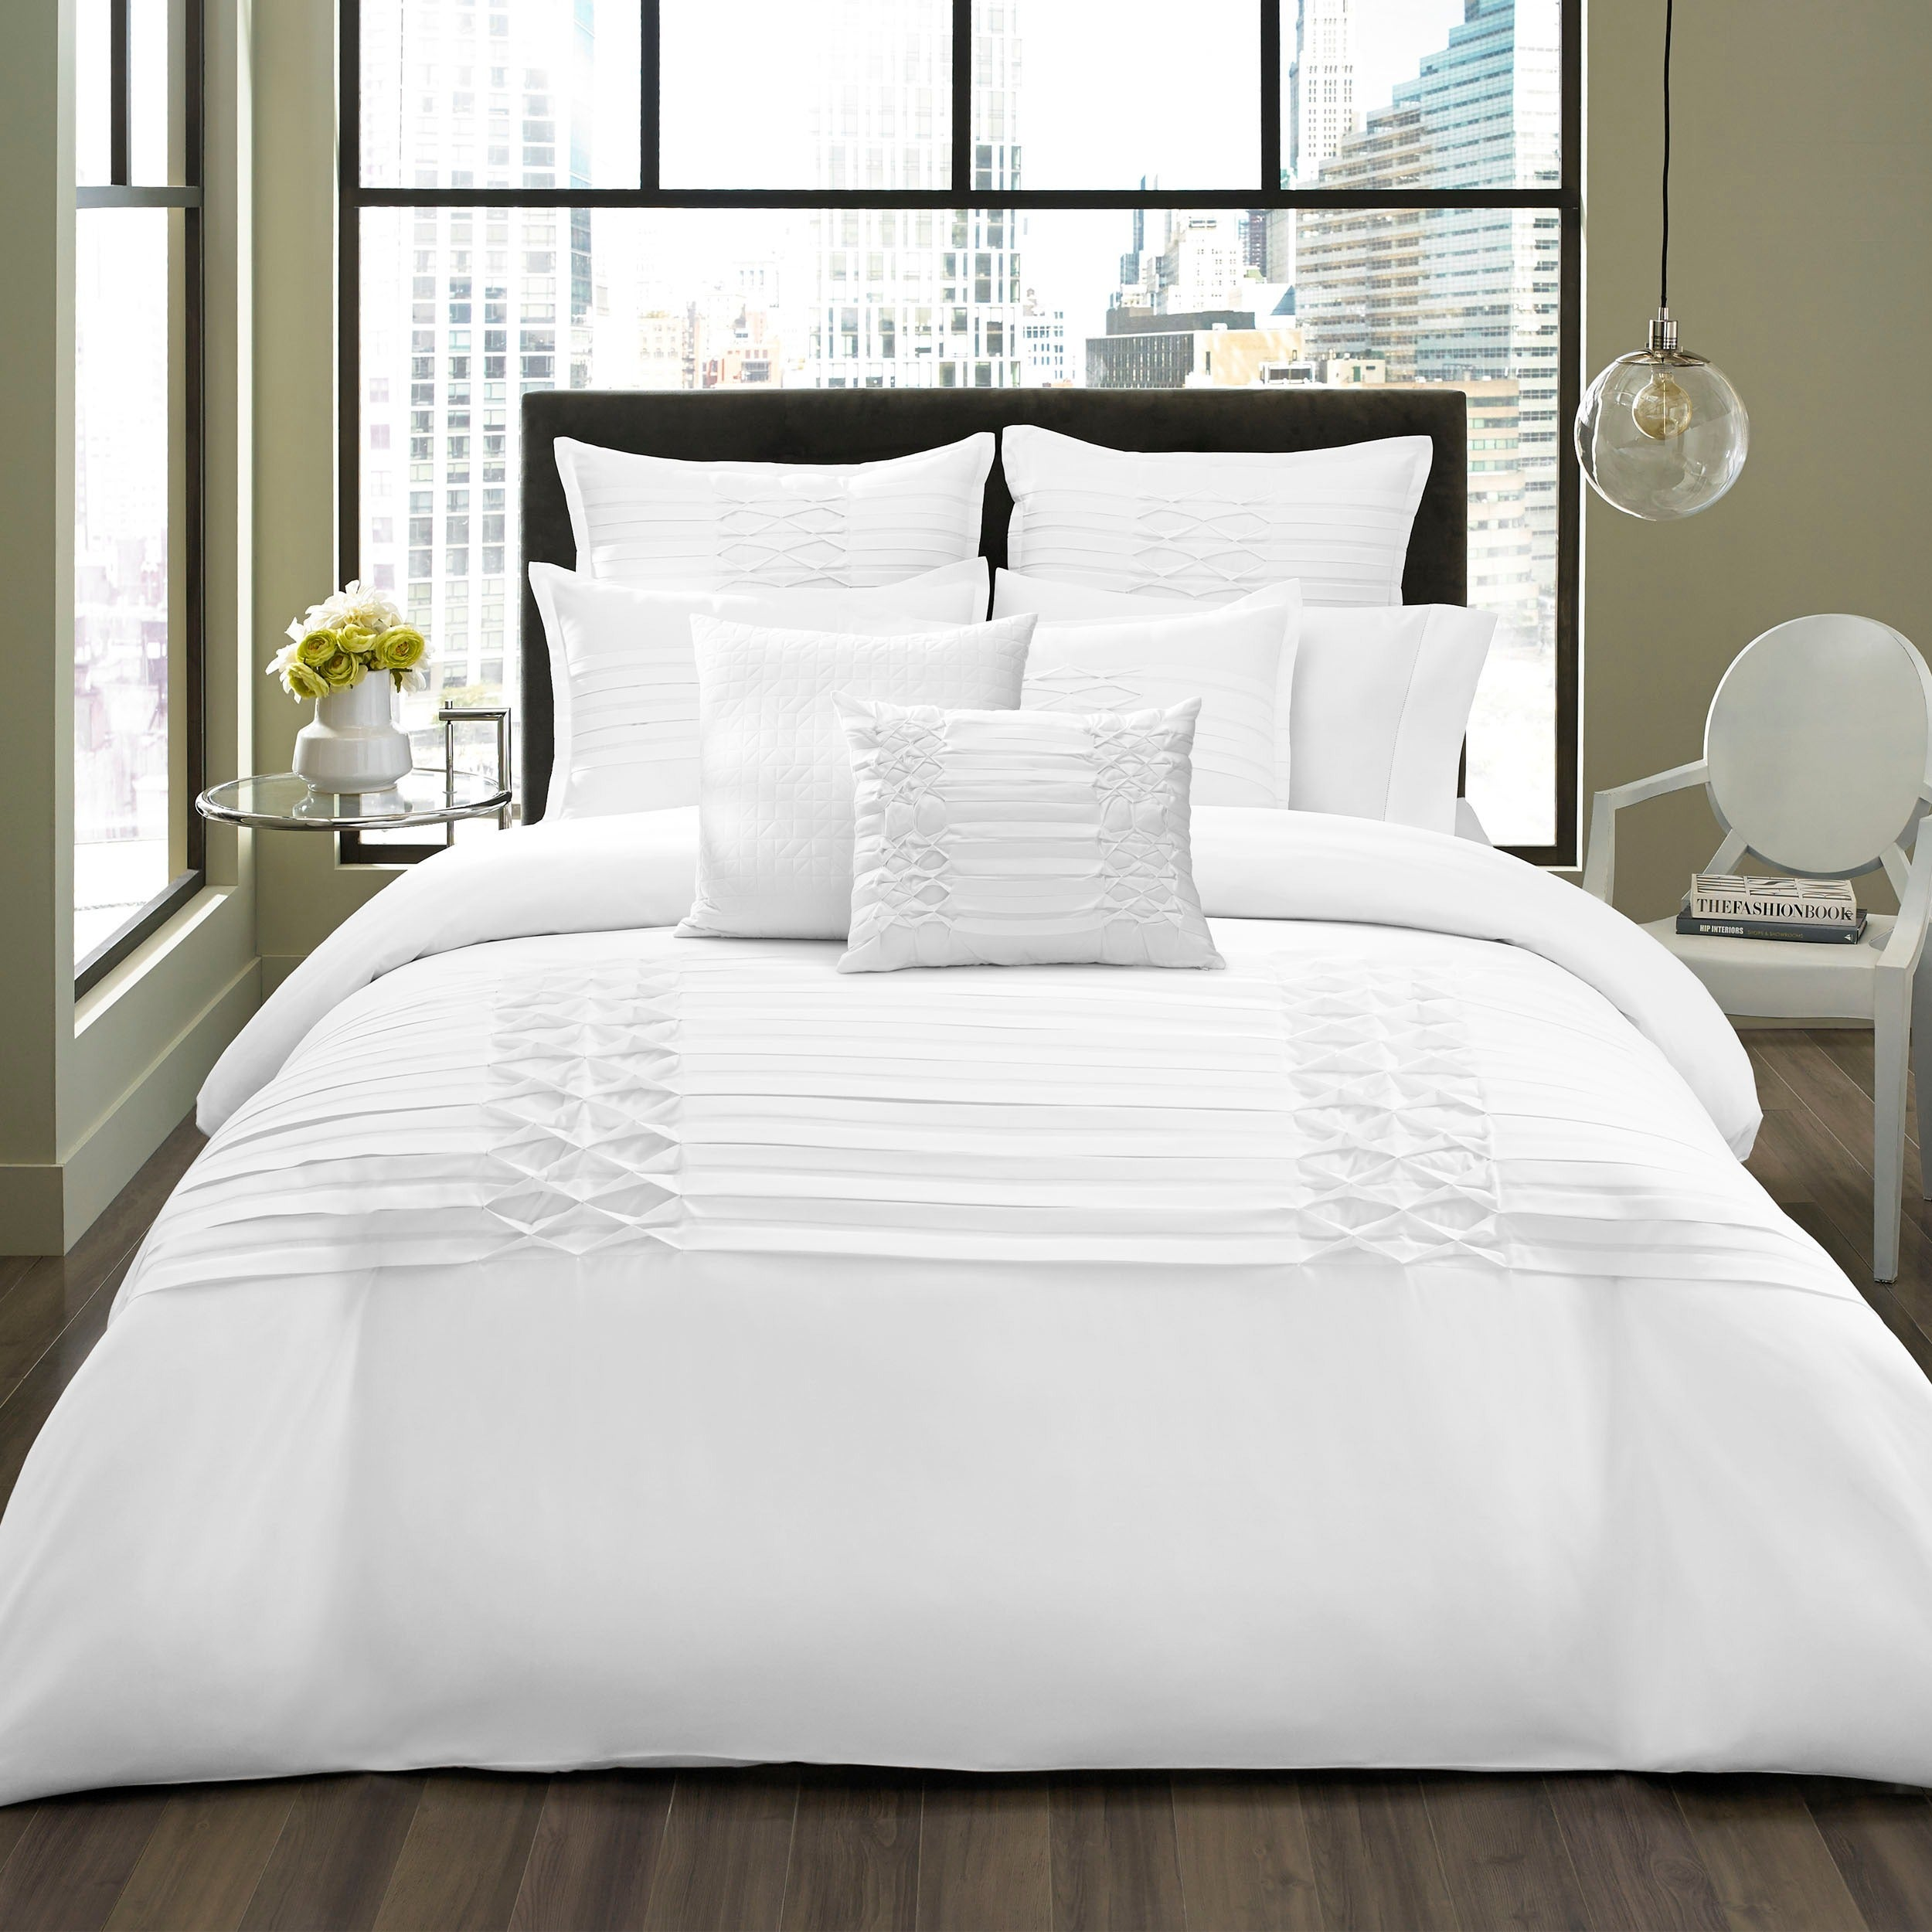 cheap flannel target size king bedroom cover stylish covers duvet elegant of the duvets black white